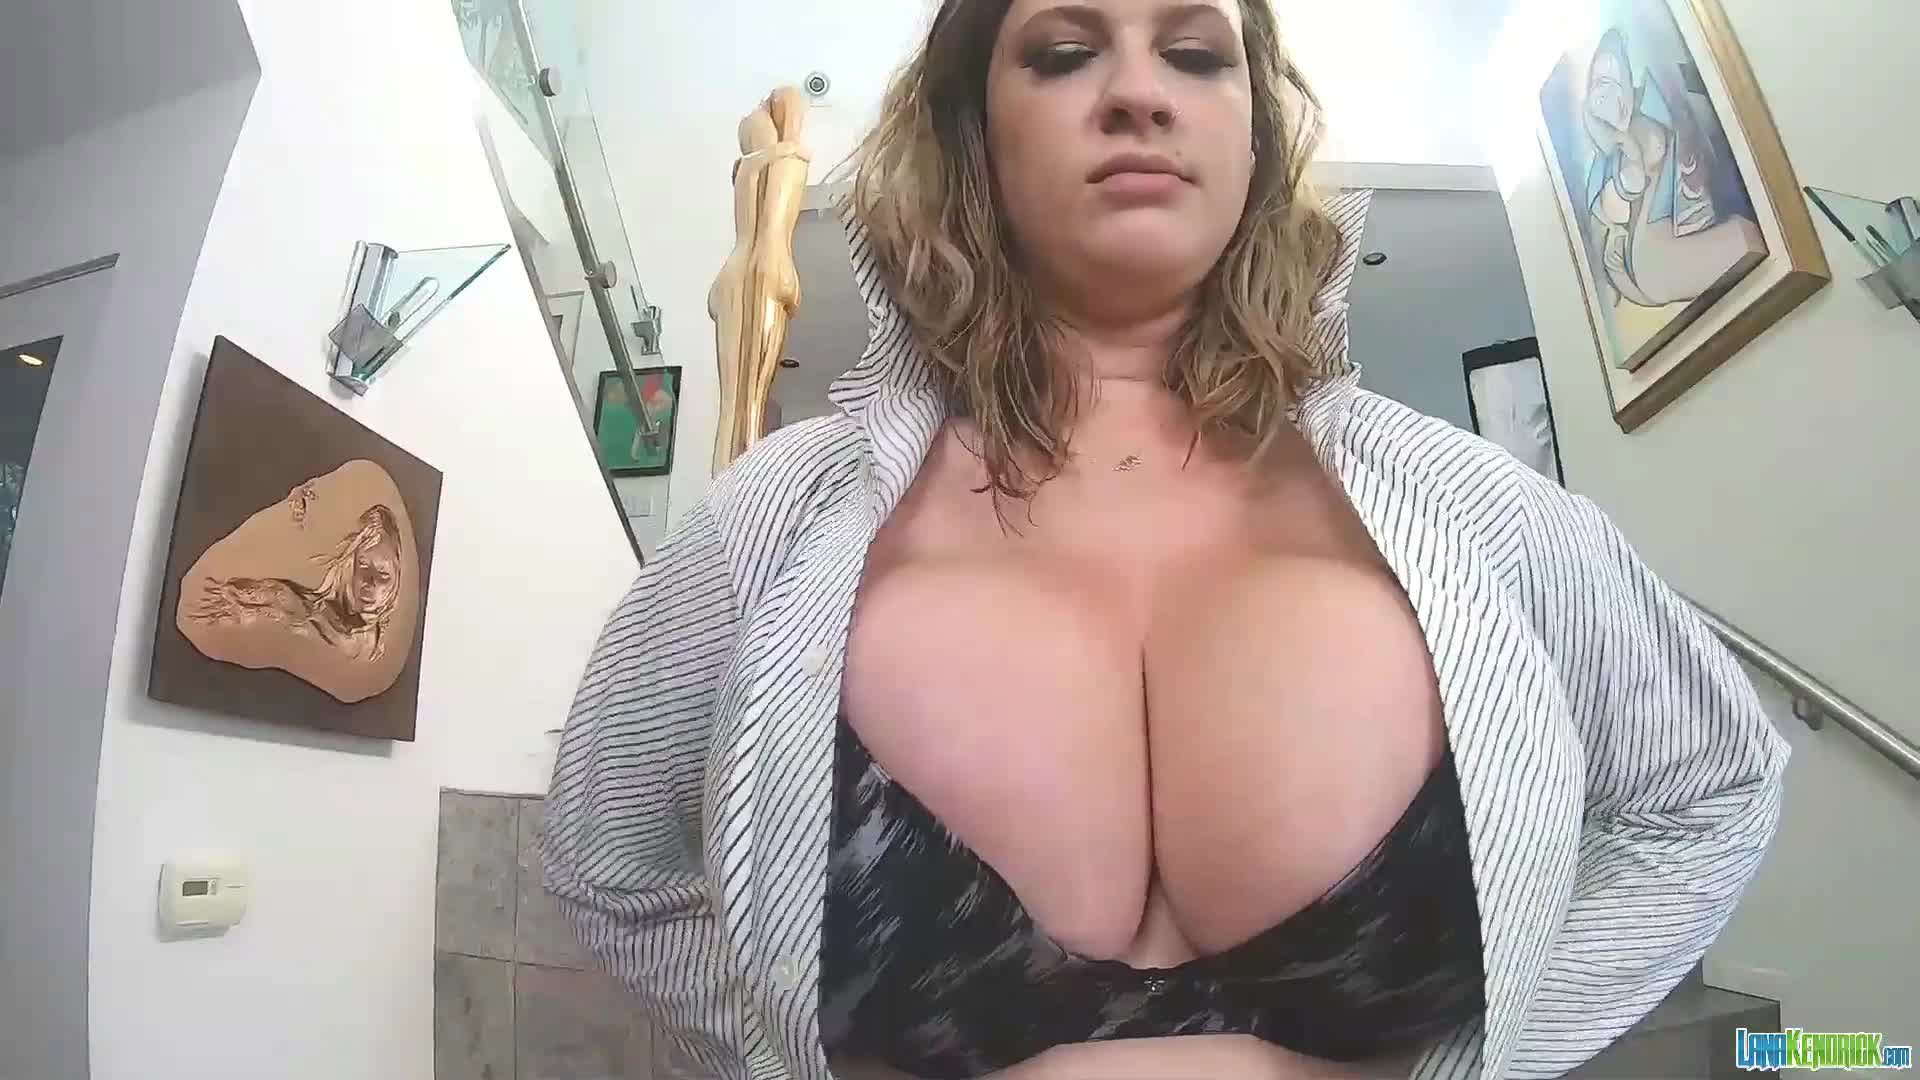 Her Tits Want Out Of That Bra